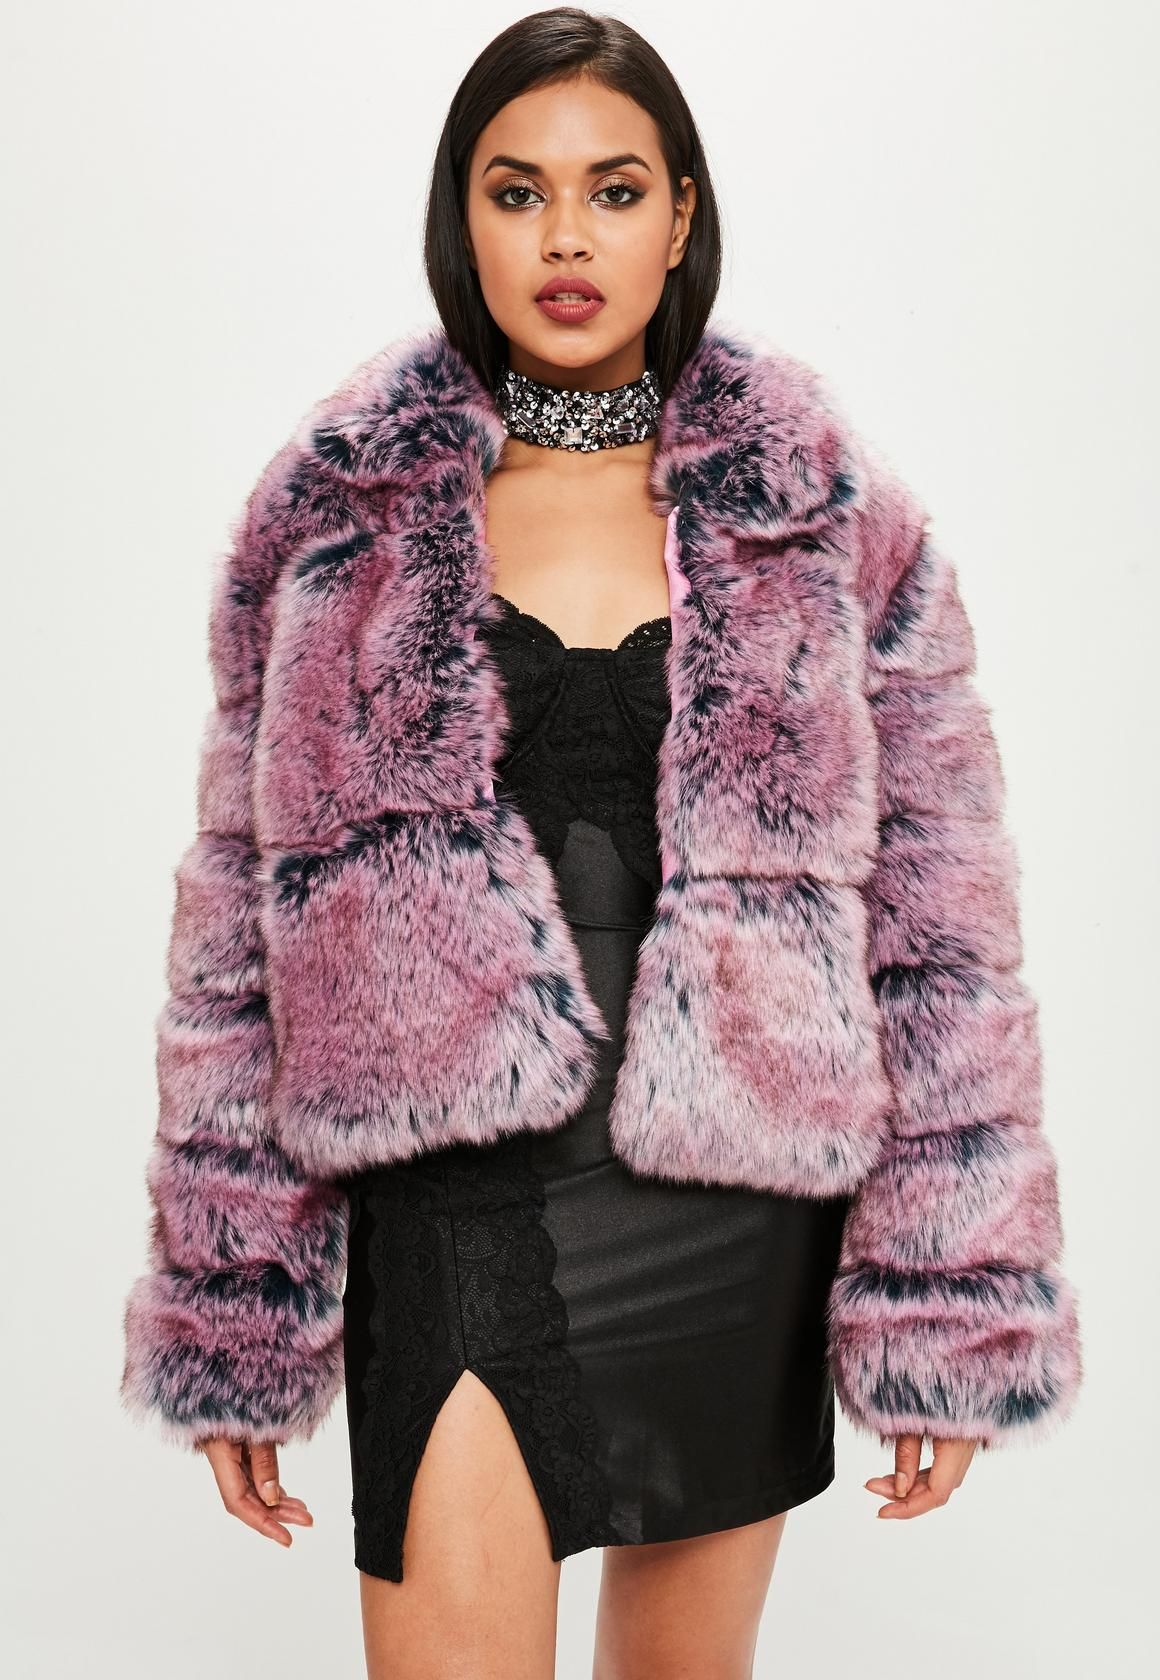 a25edc7d5ad3c Missguided - Carli Bybel x Missguided Pink Puffer Jacket